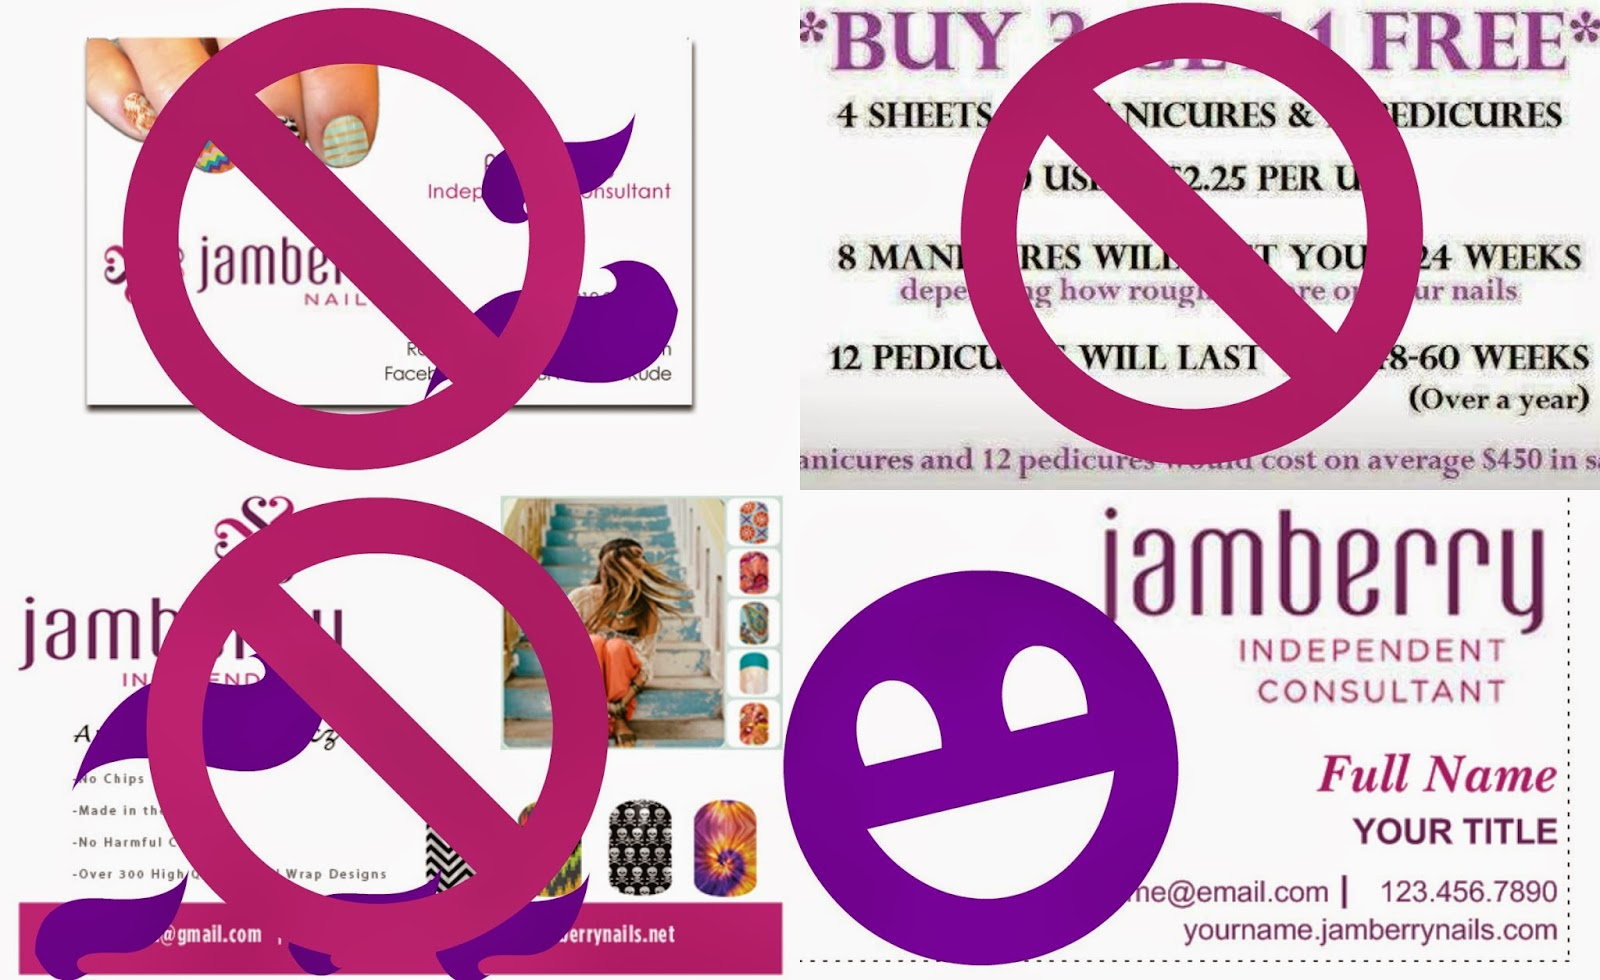 Jamberry Nails Uses Vistaprint Update Business Cards